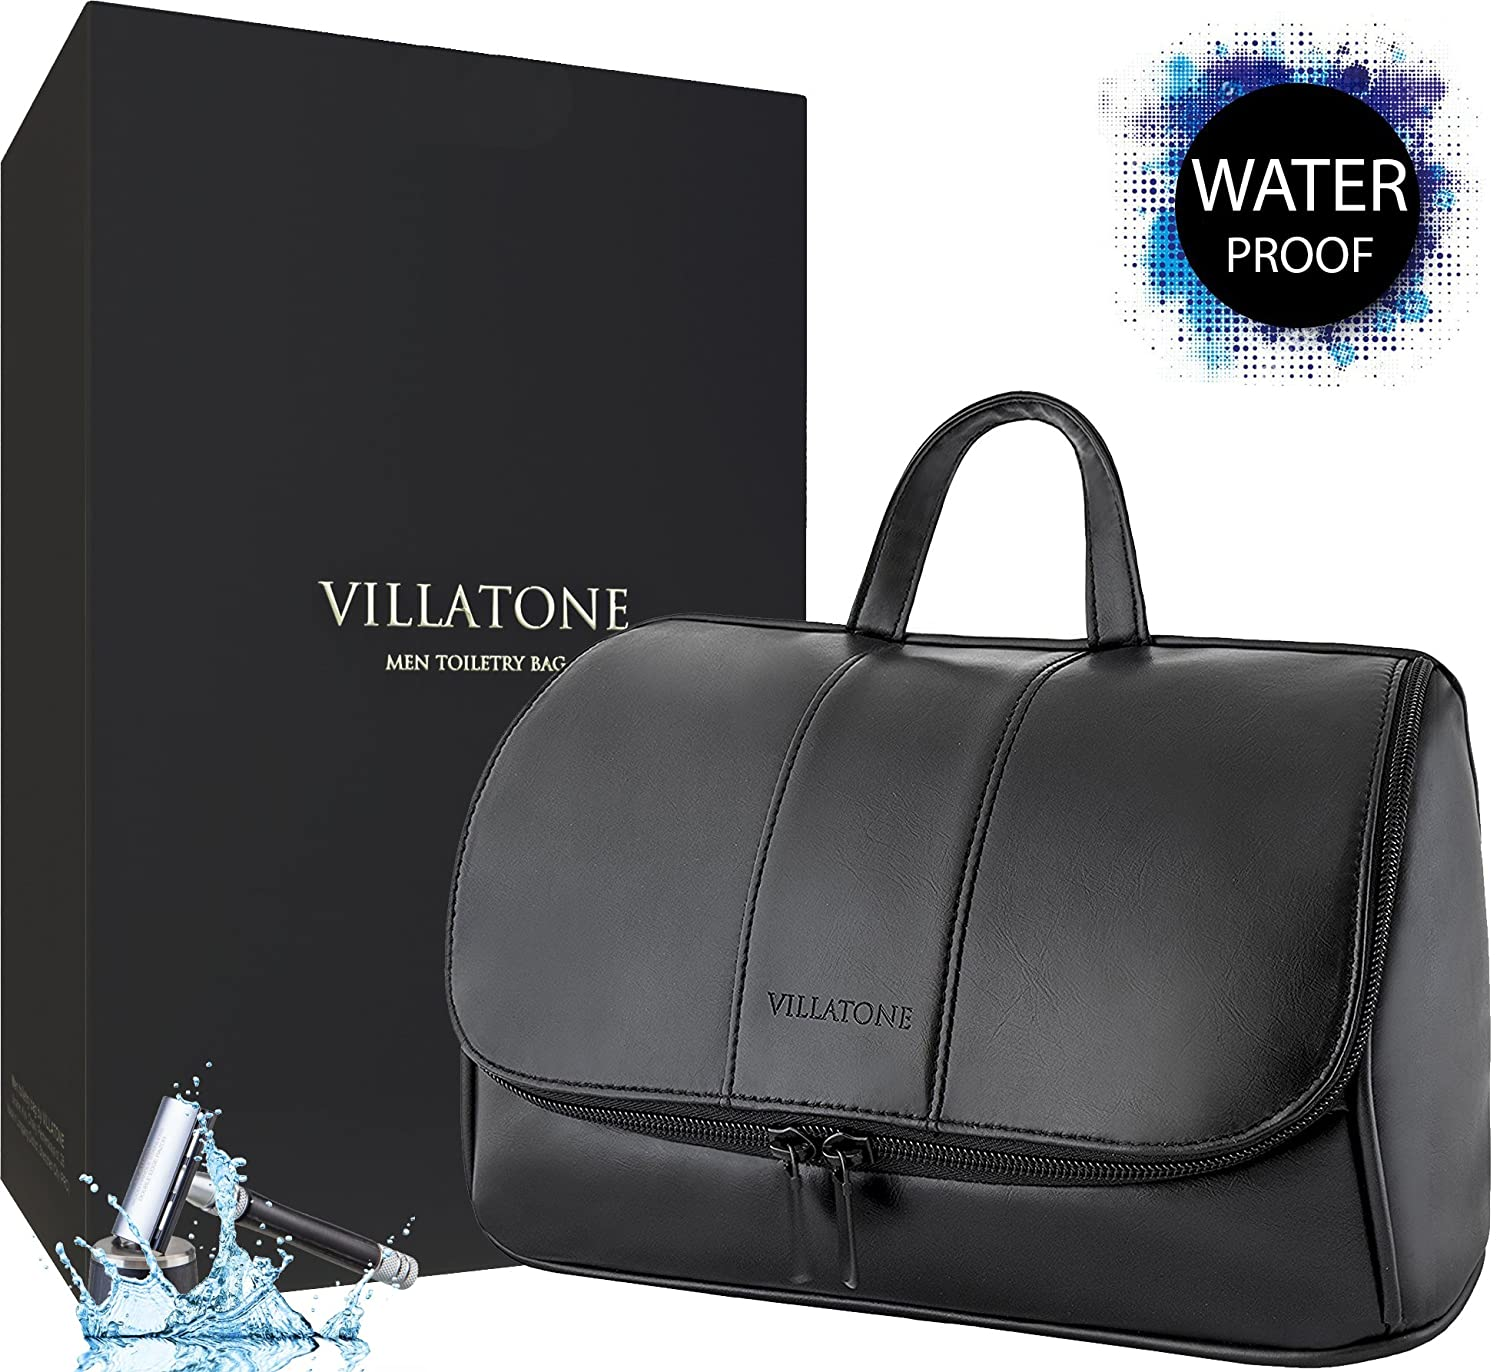 25c74a109f low-cost VILLATONE Leather Toiletry Bag for Men. Large Black Hanging Travel  Organizer